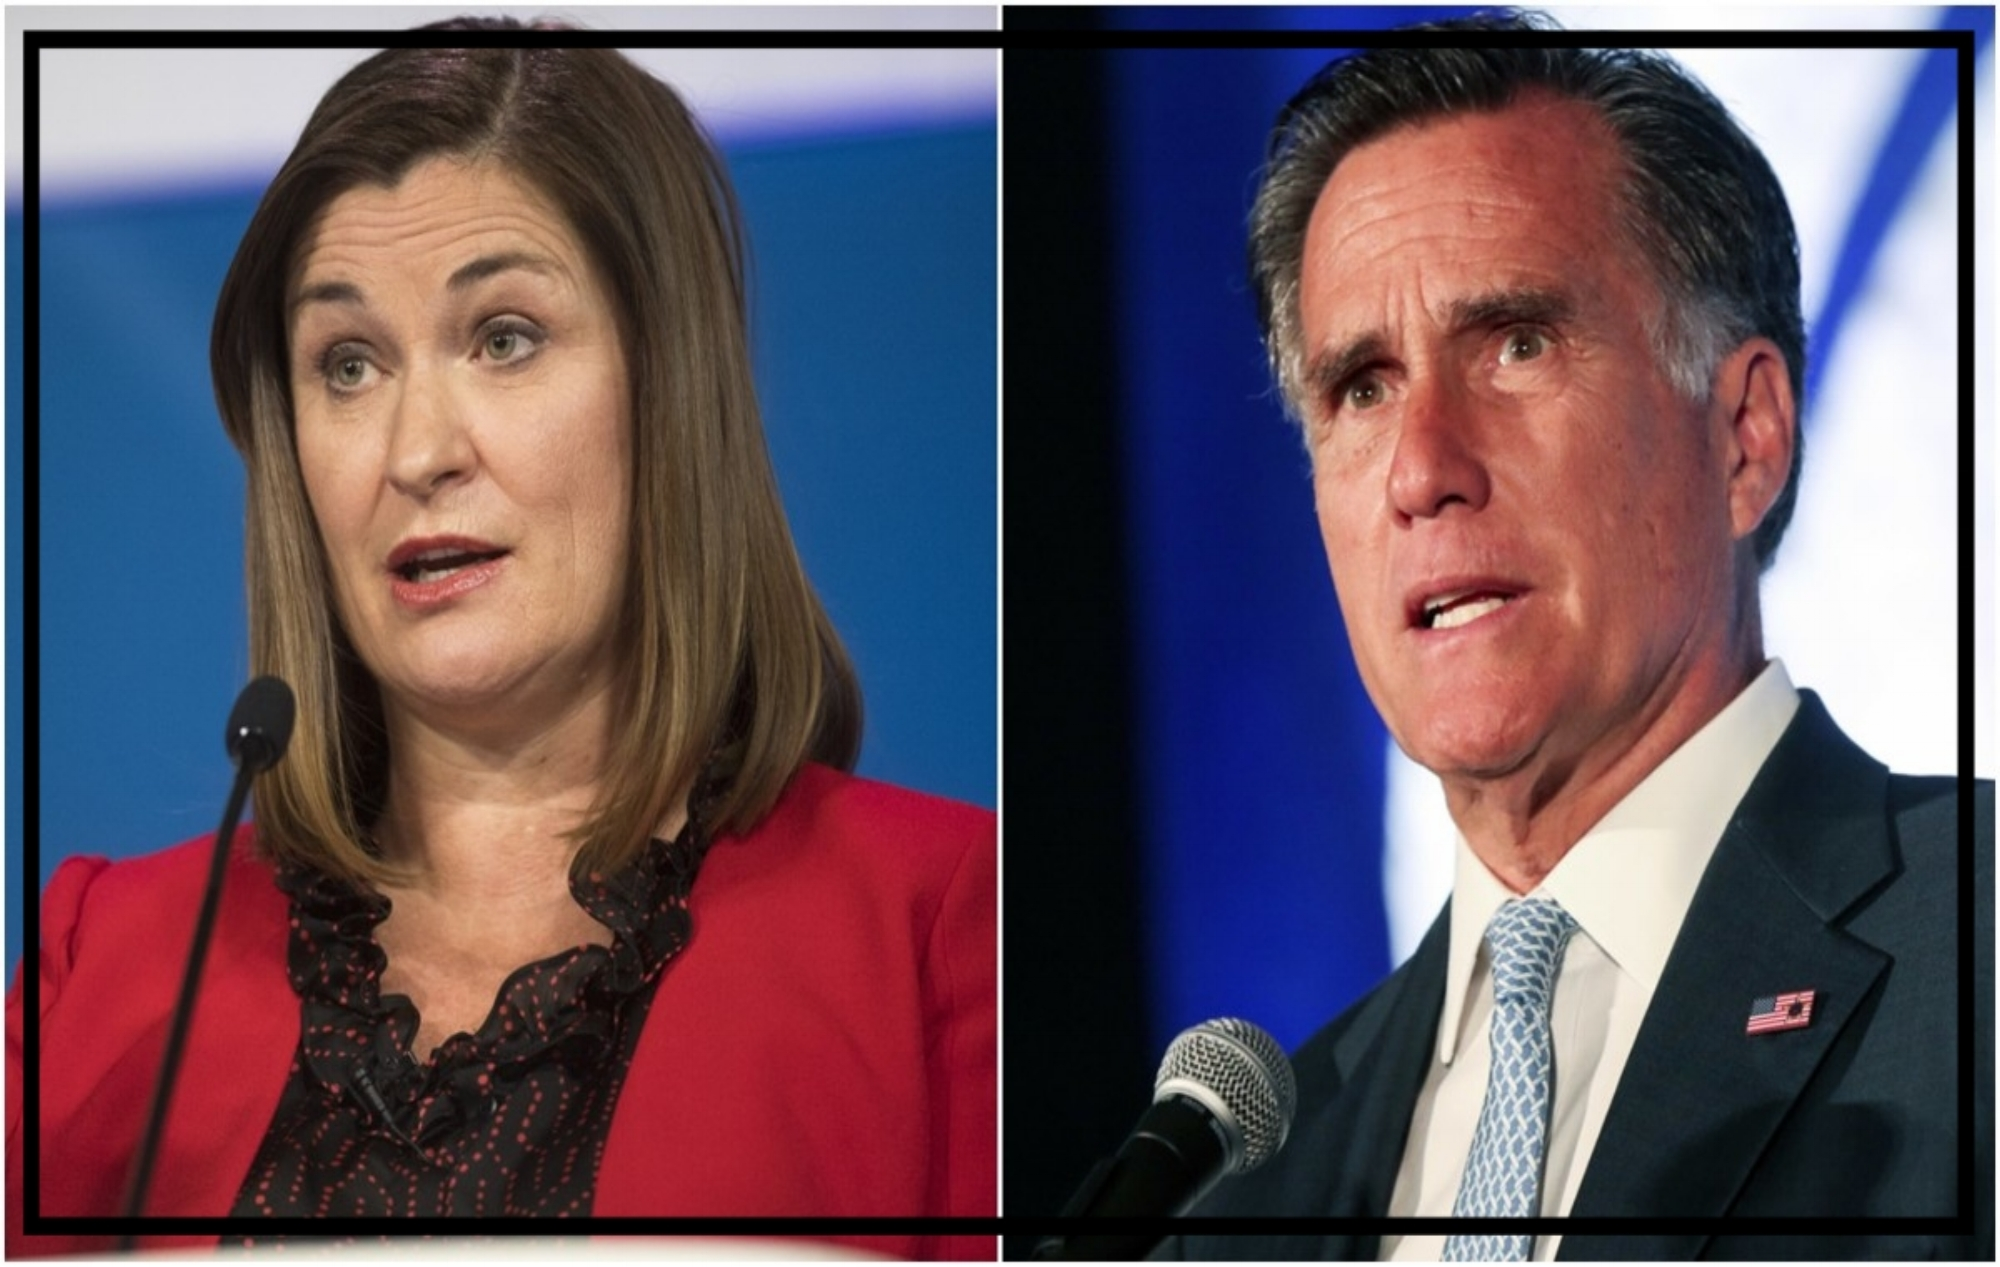 Jenny Wilson and Mitt Romney of Utah